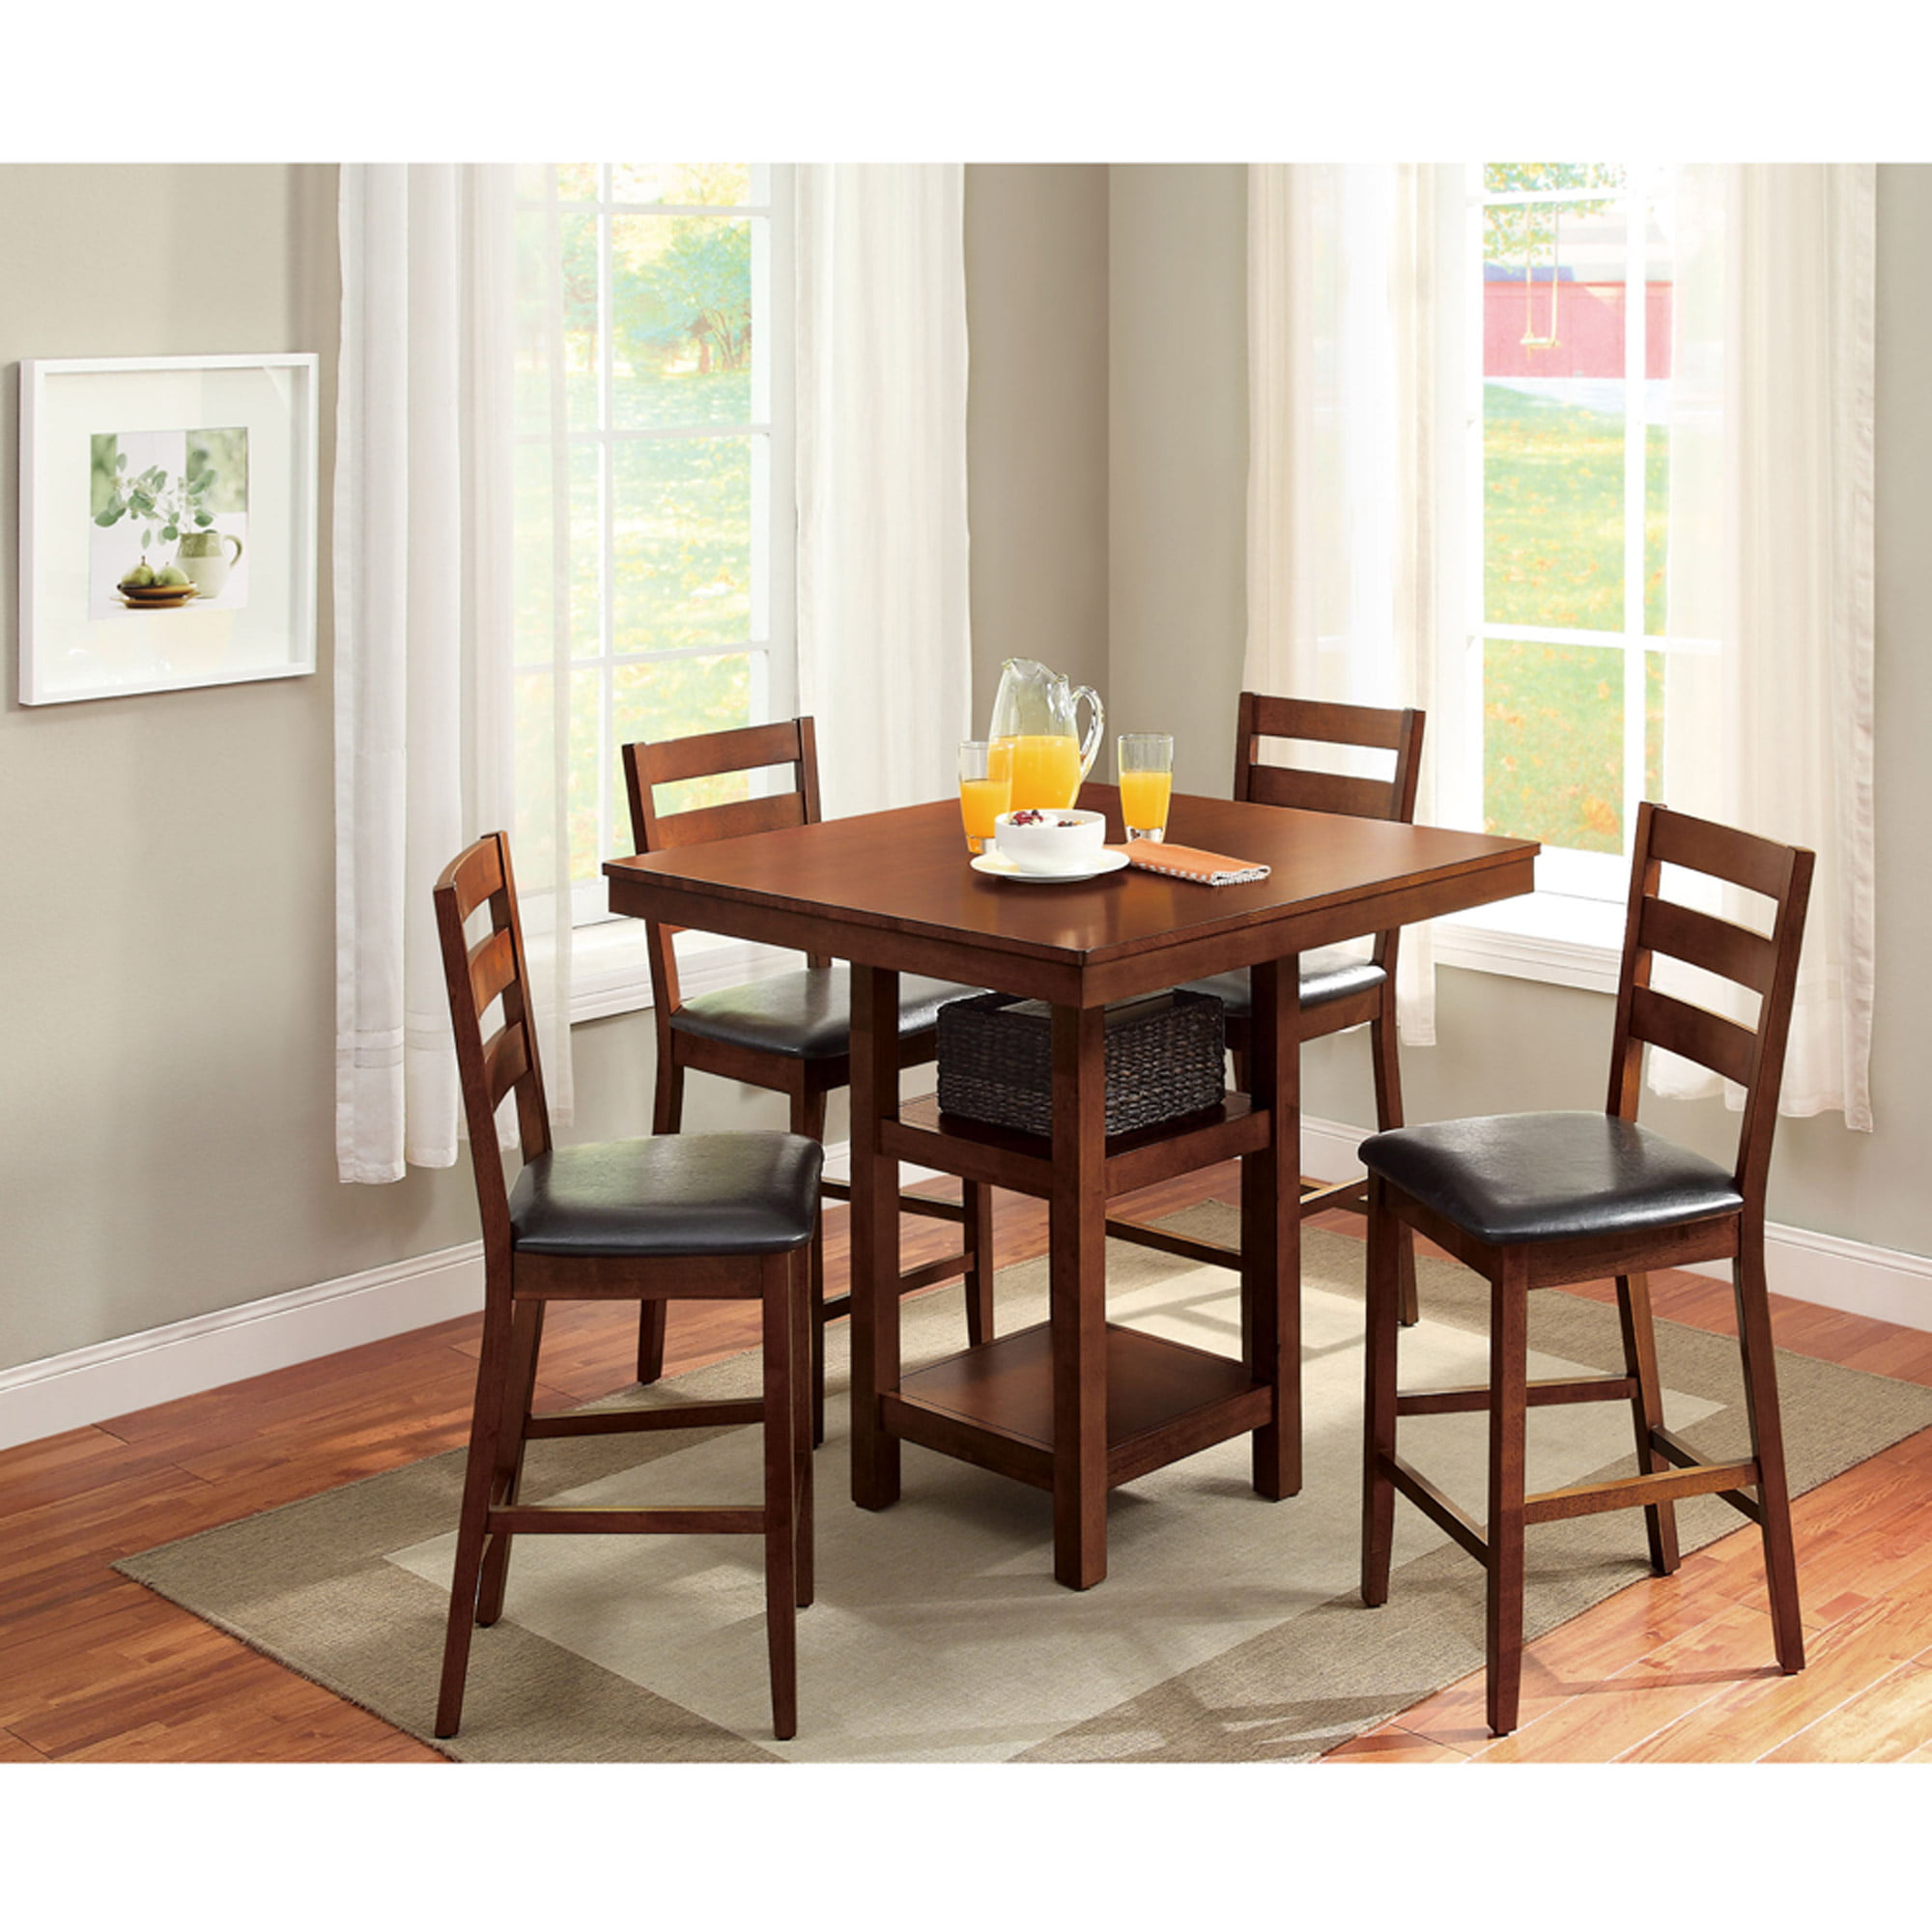 Kitchen  Dining Furniture Walmartcom - Dining rooms sets for sale